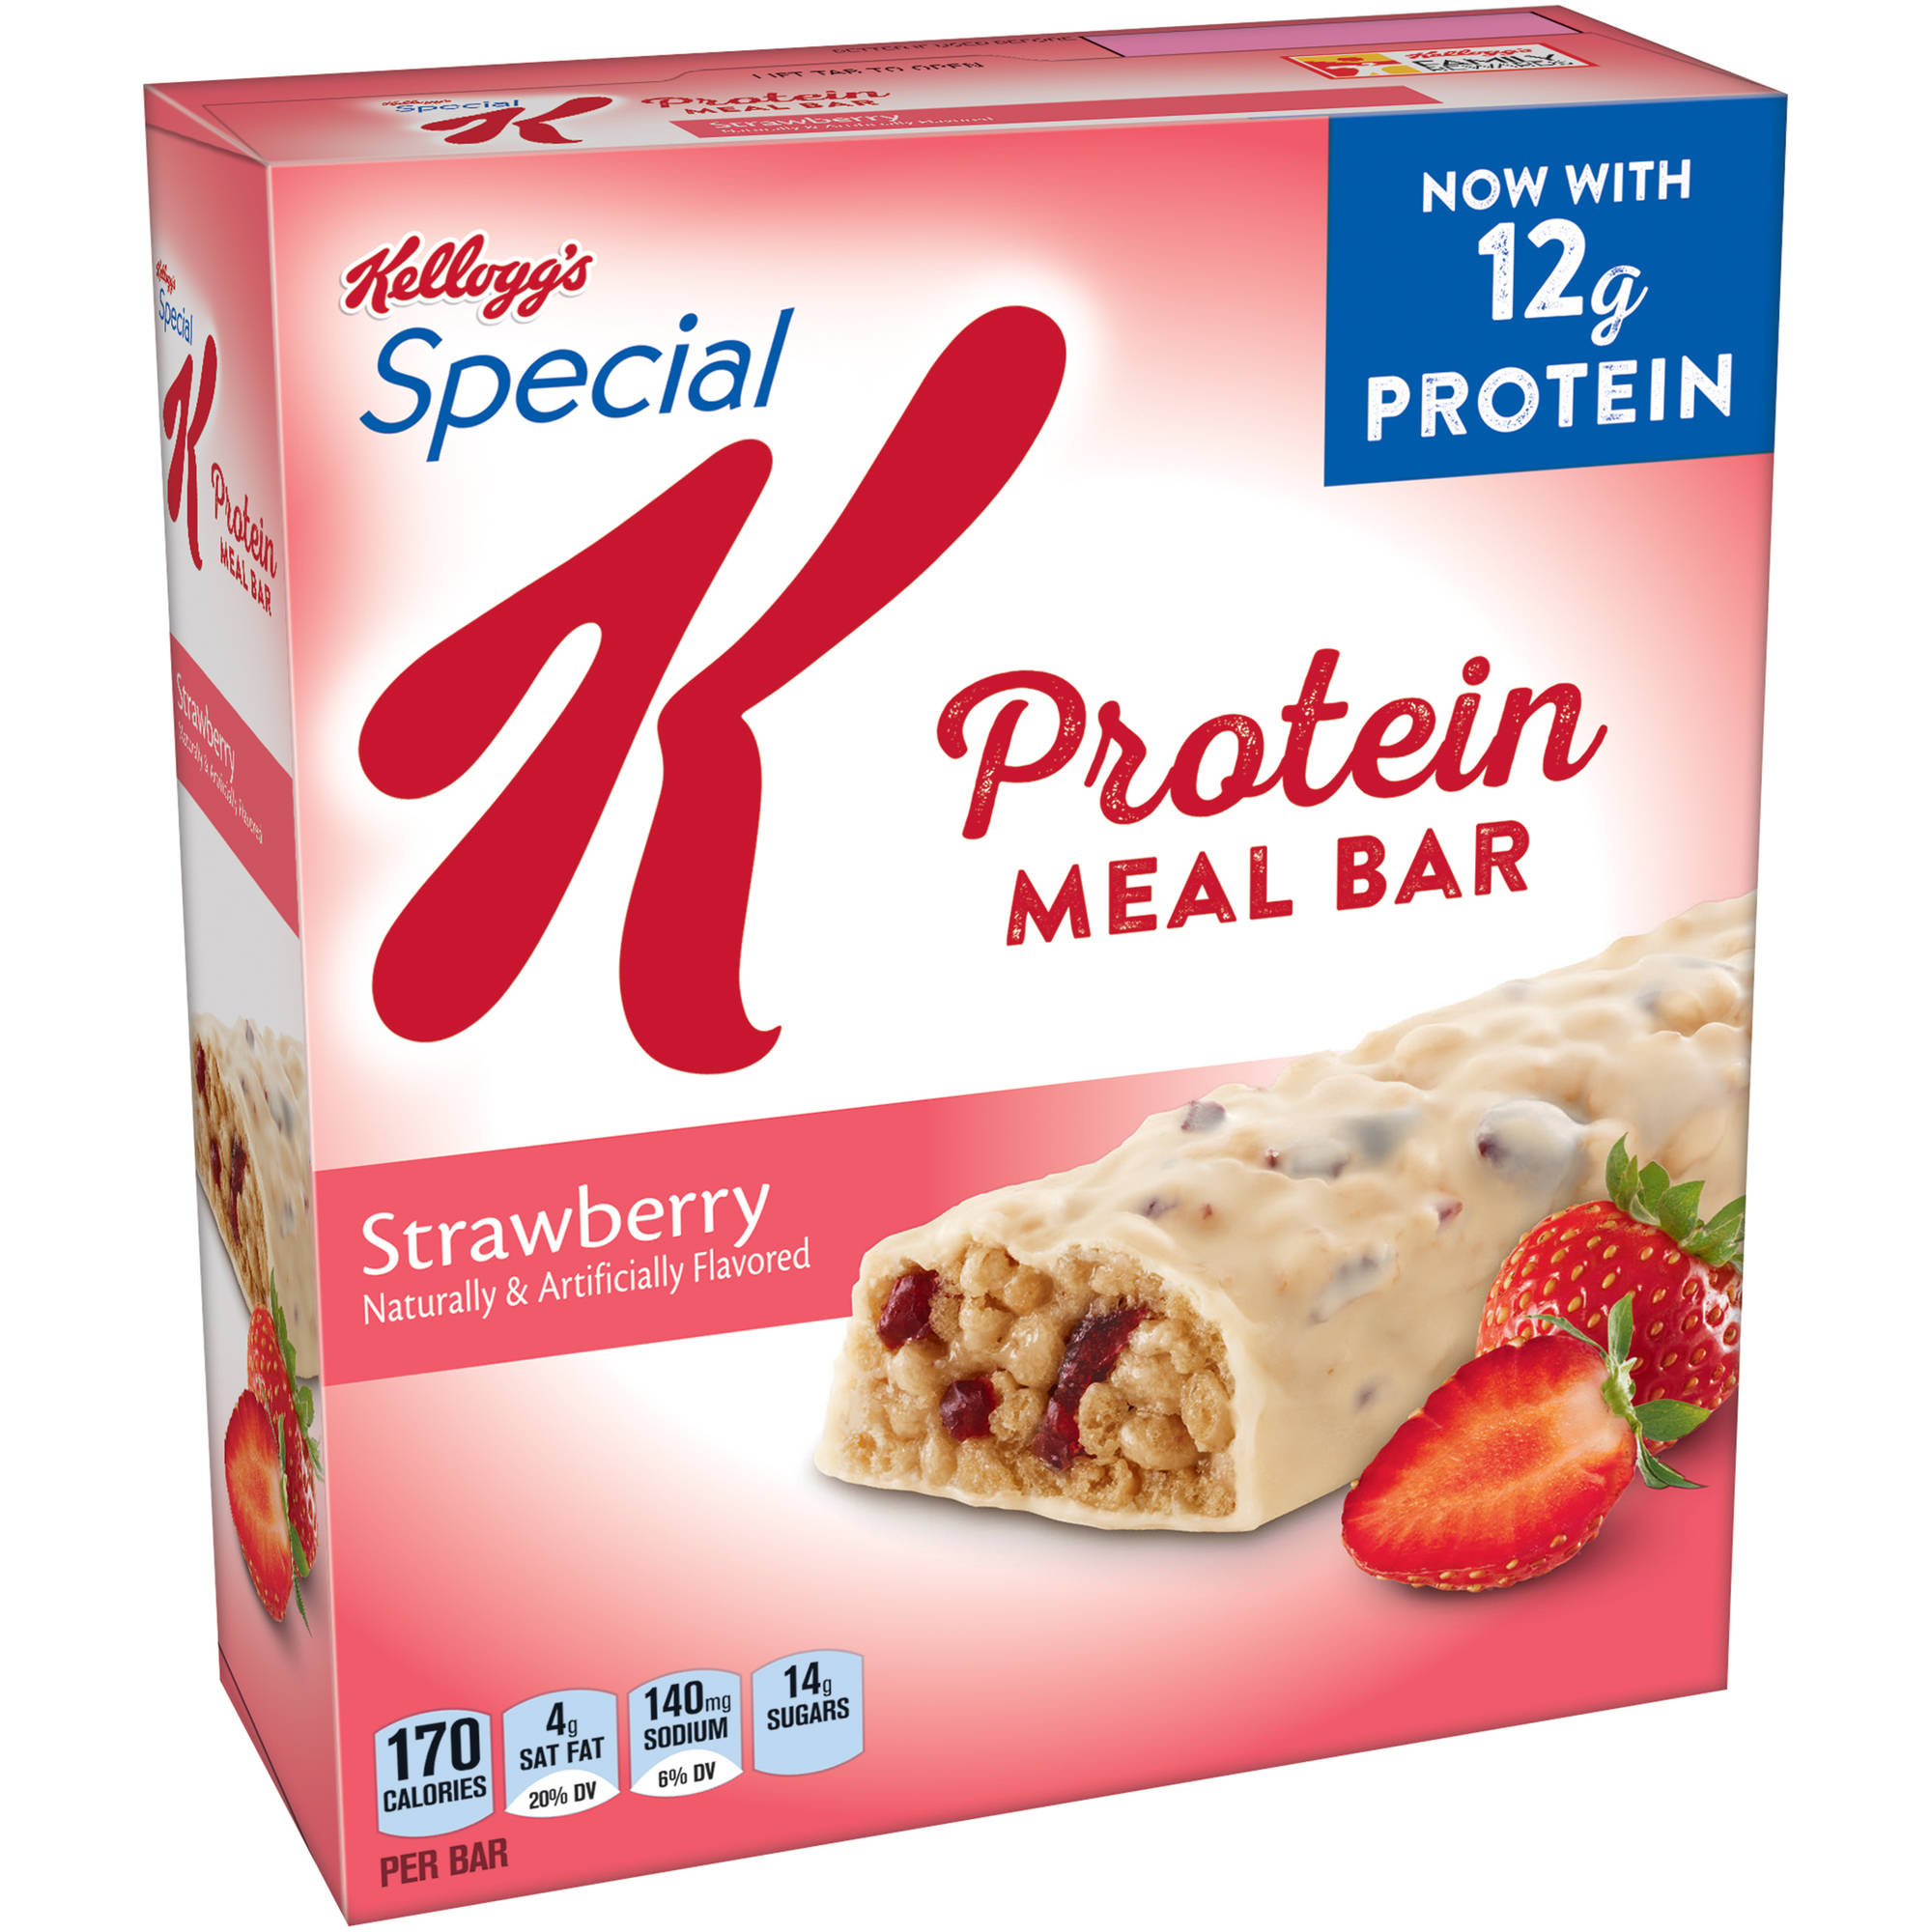 Special K Strawberry Protein Meal Bar, 6 count box